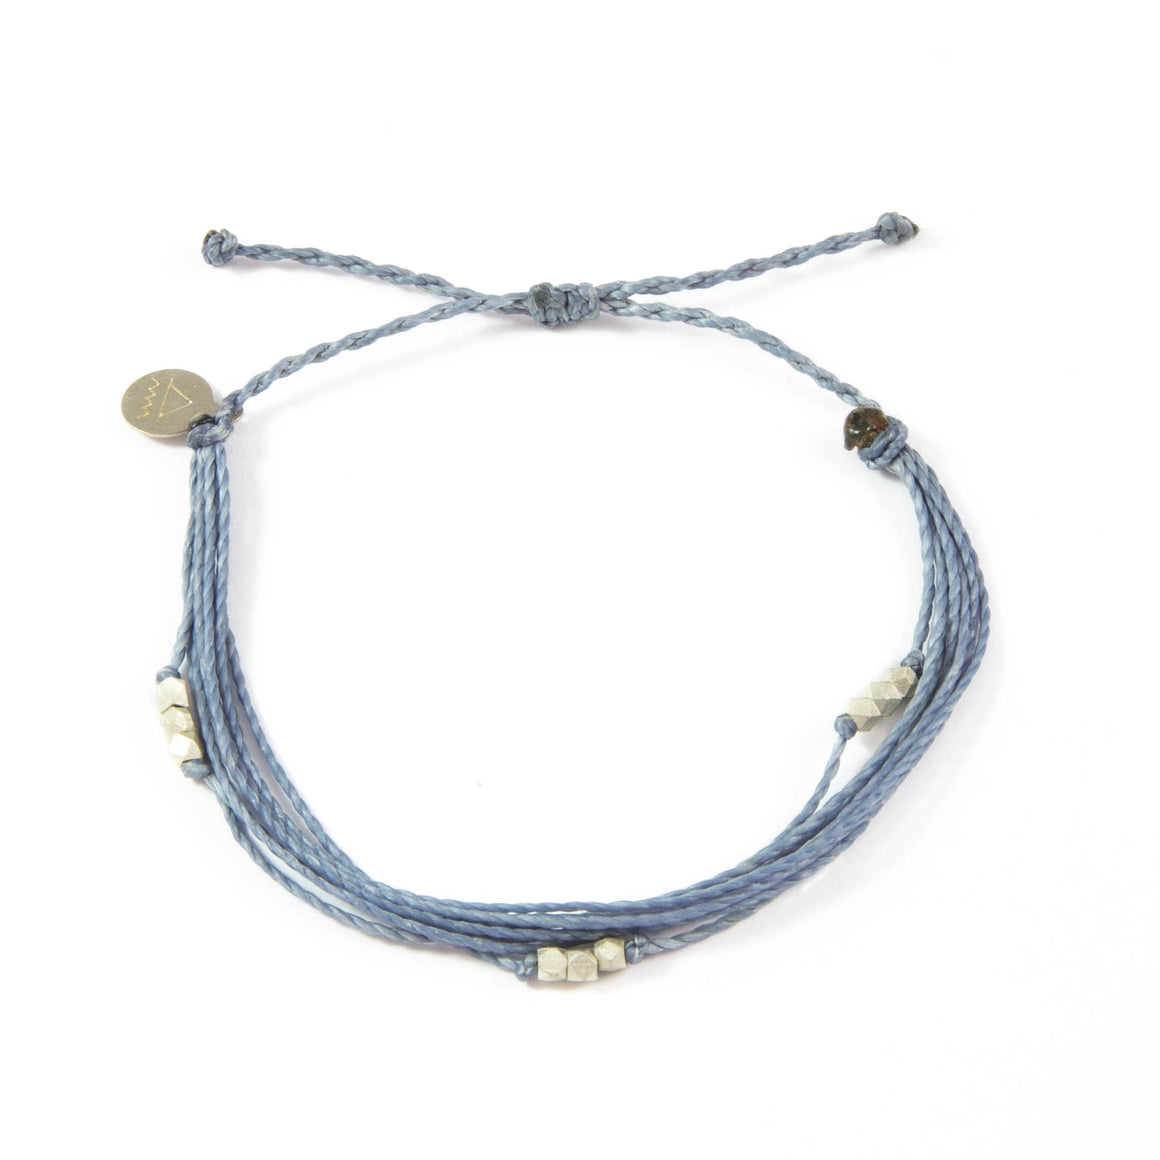 Denim Macua in Silver Bracelet